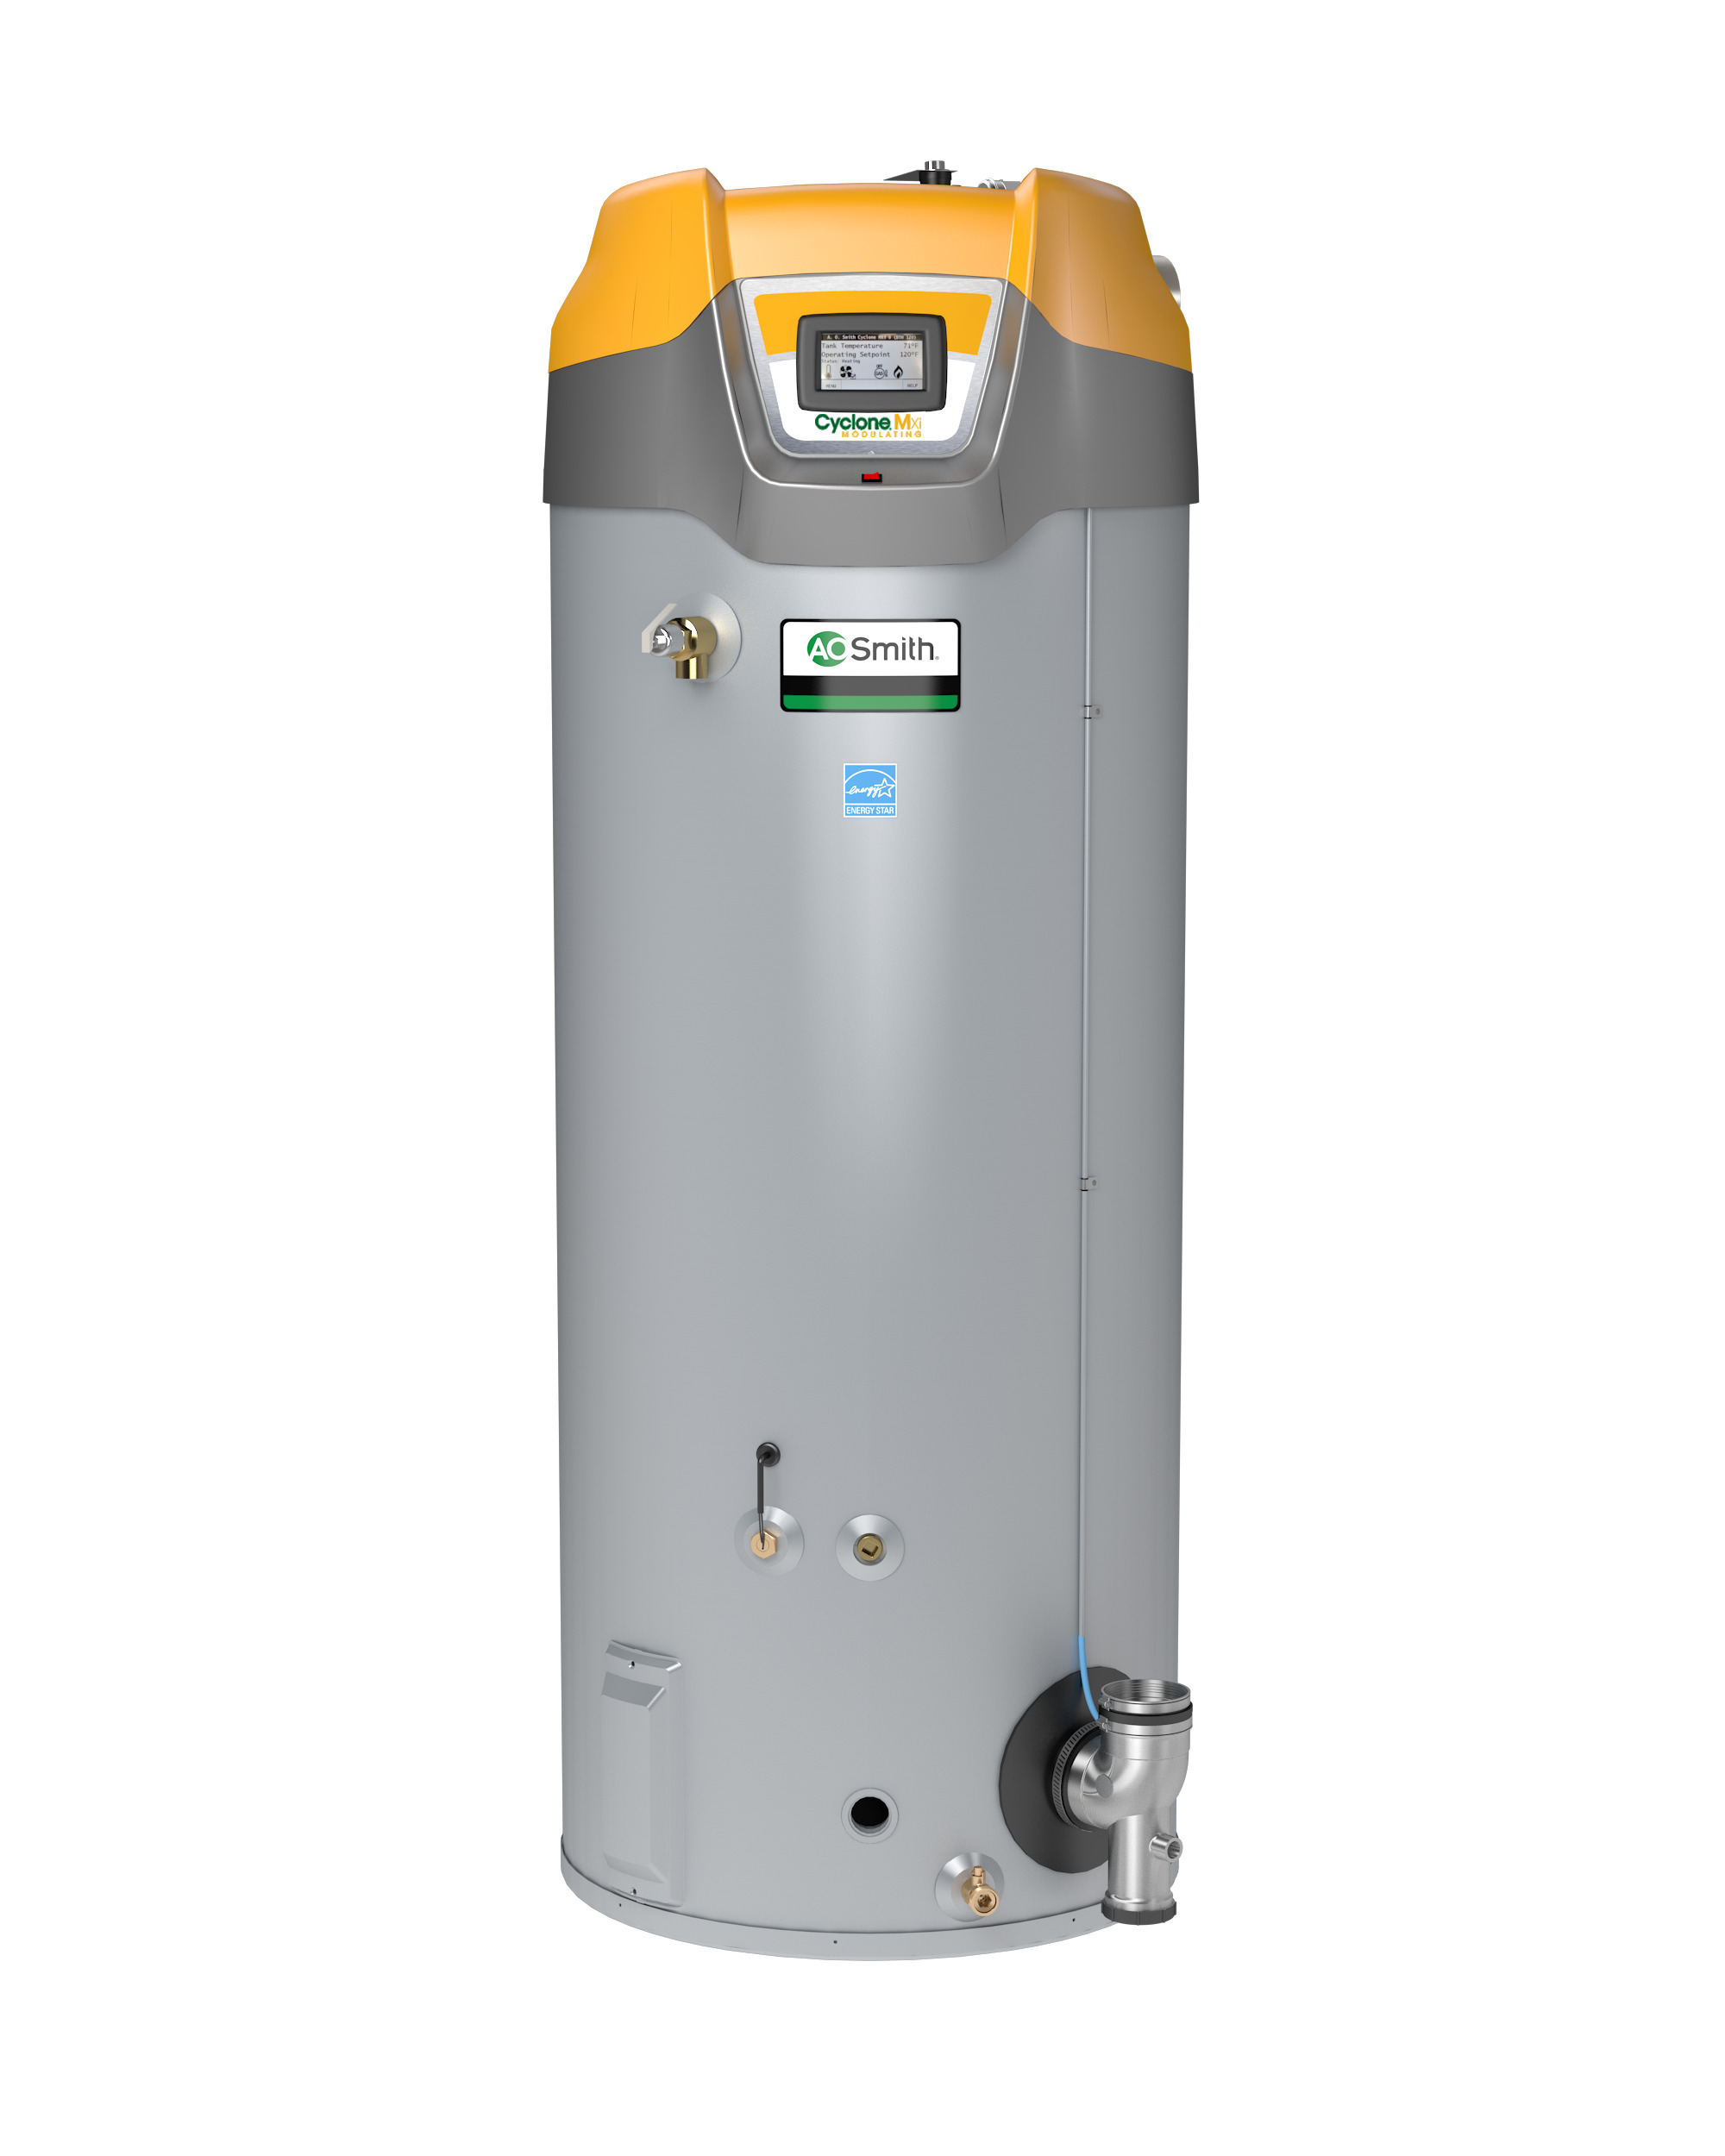 AO SMITH BTH-199A-LP: 100 GALLON, 199,000-BTU, UP TO 97% THERMAL EFFICIENCY, ASME, 3inch VENT, LP (LIQUID PROPANE) CYCLONE Mxi MODULATING COMMERCIAL GAS WATER HEATER